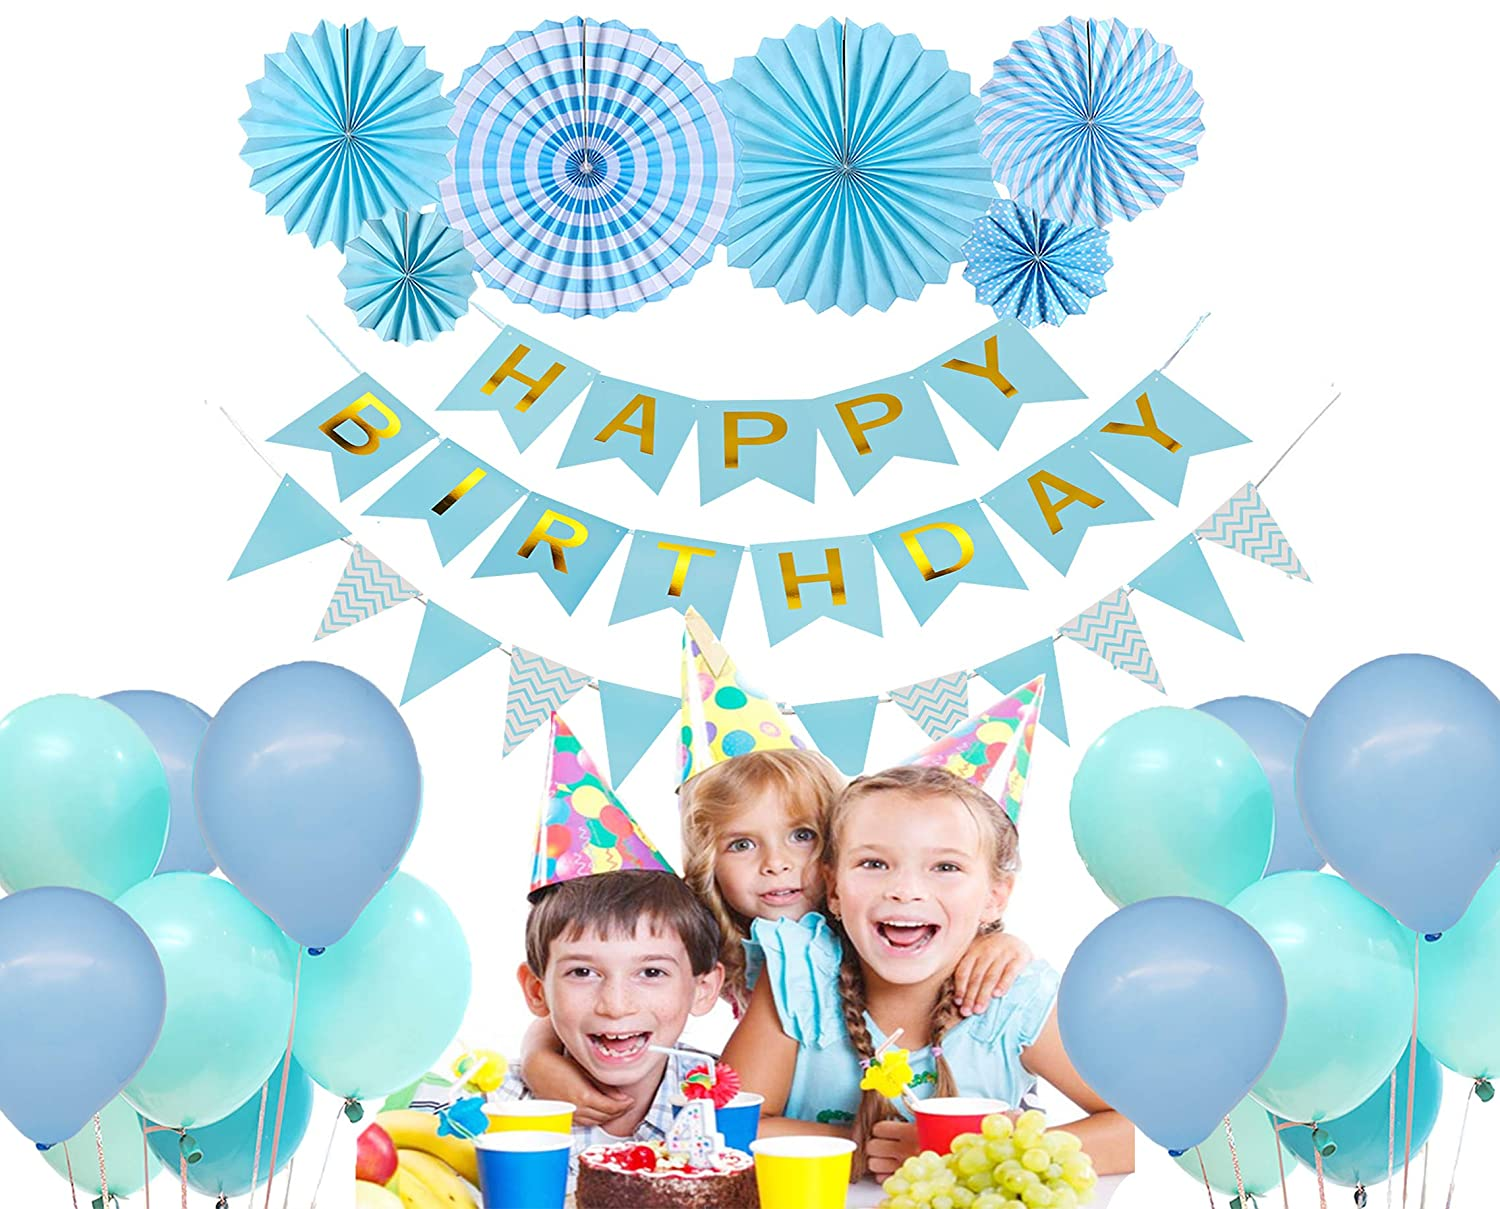 Vinet Birthday Decoration Party Supplies Blue Happy Birthday Banner 6 Blue Paper Flowers Blue Triangle Bunting Flags 16 Blue Balloons